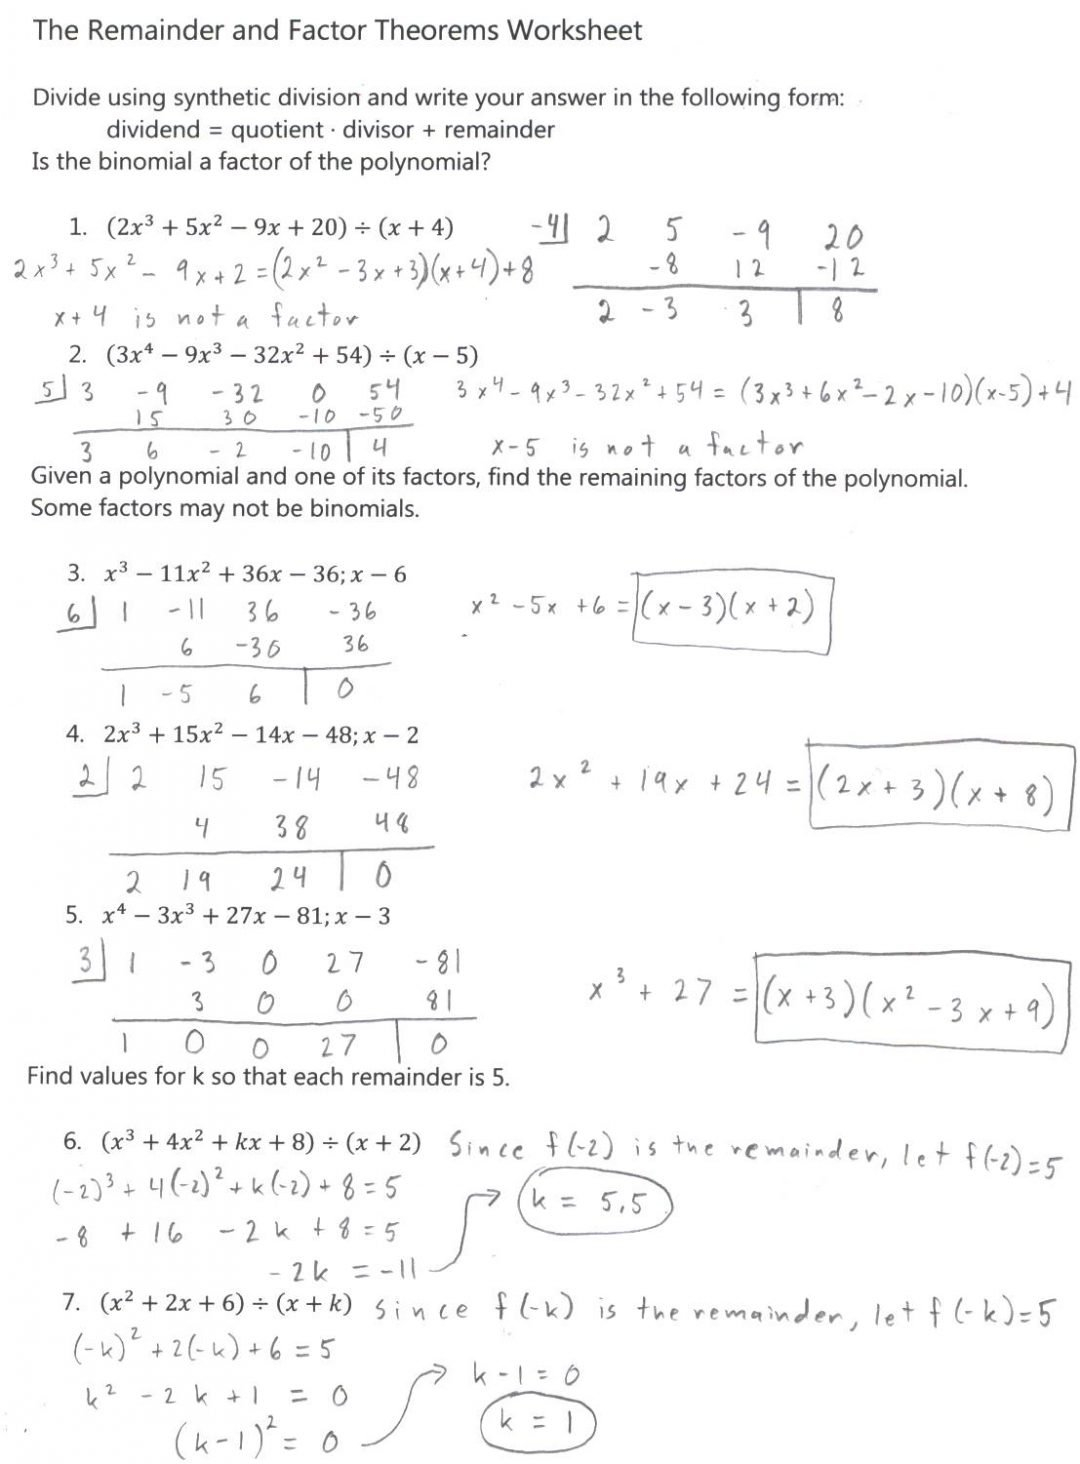 Multiplication And Division Worksheets Grade 4  Yooob Along With Synthetic Division Worksheet With Answers